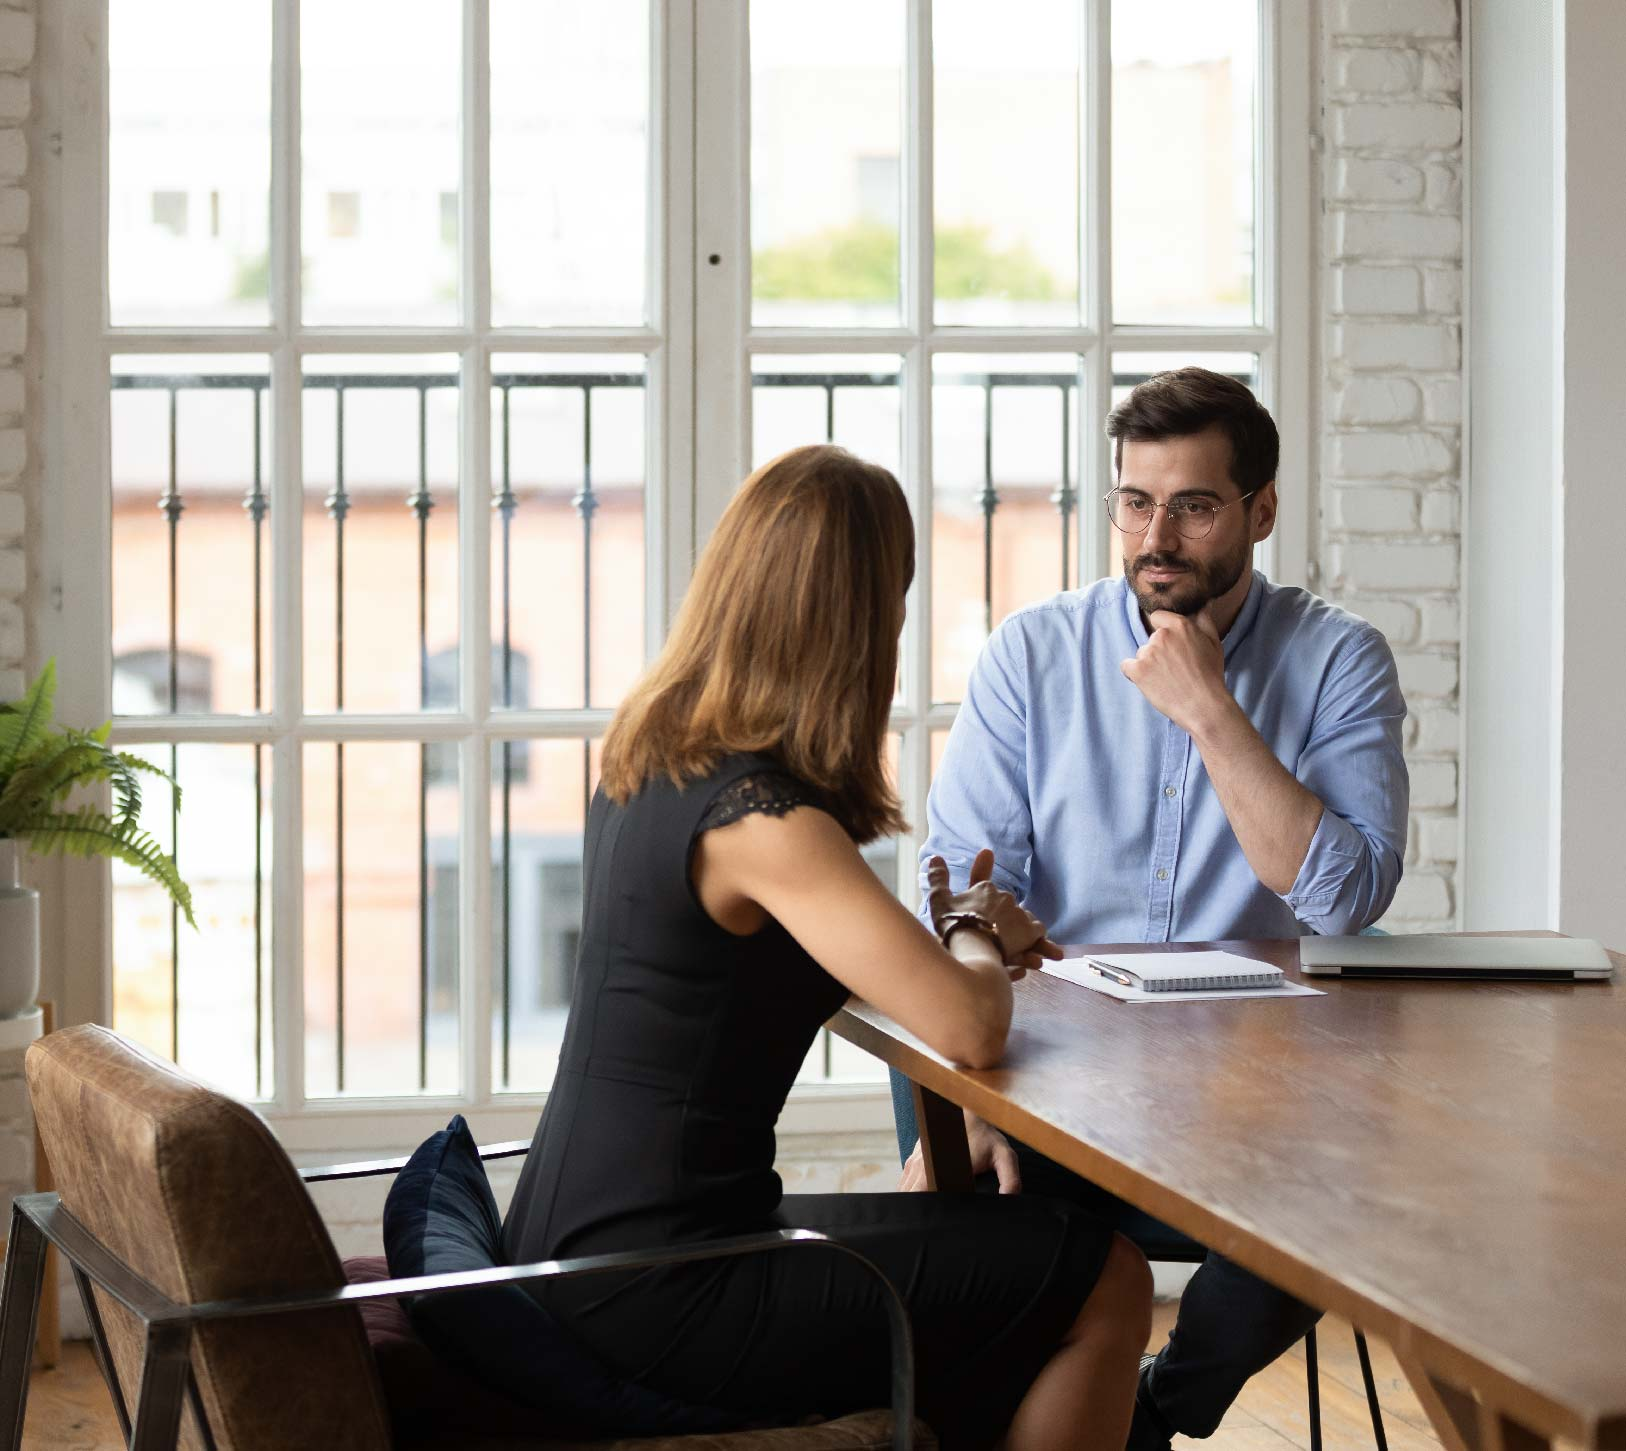 Boss talking with employee in office setting at a table.